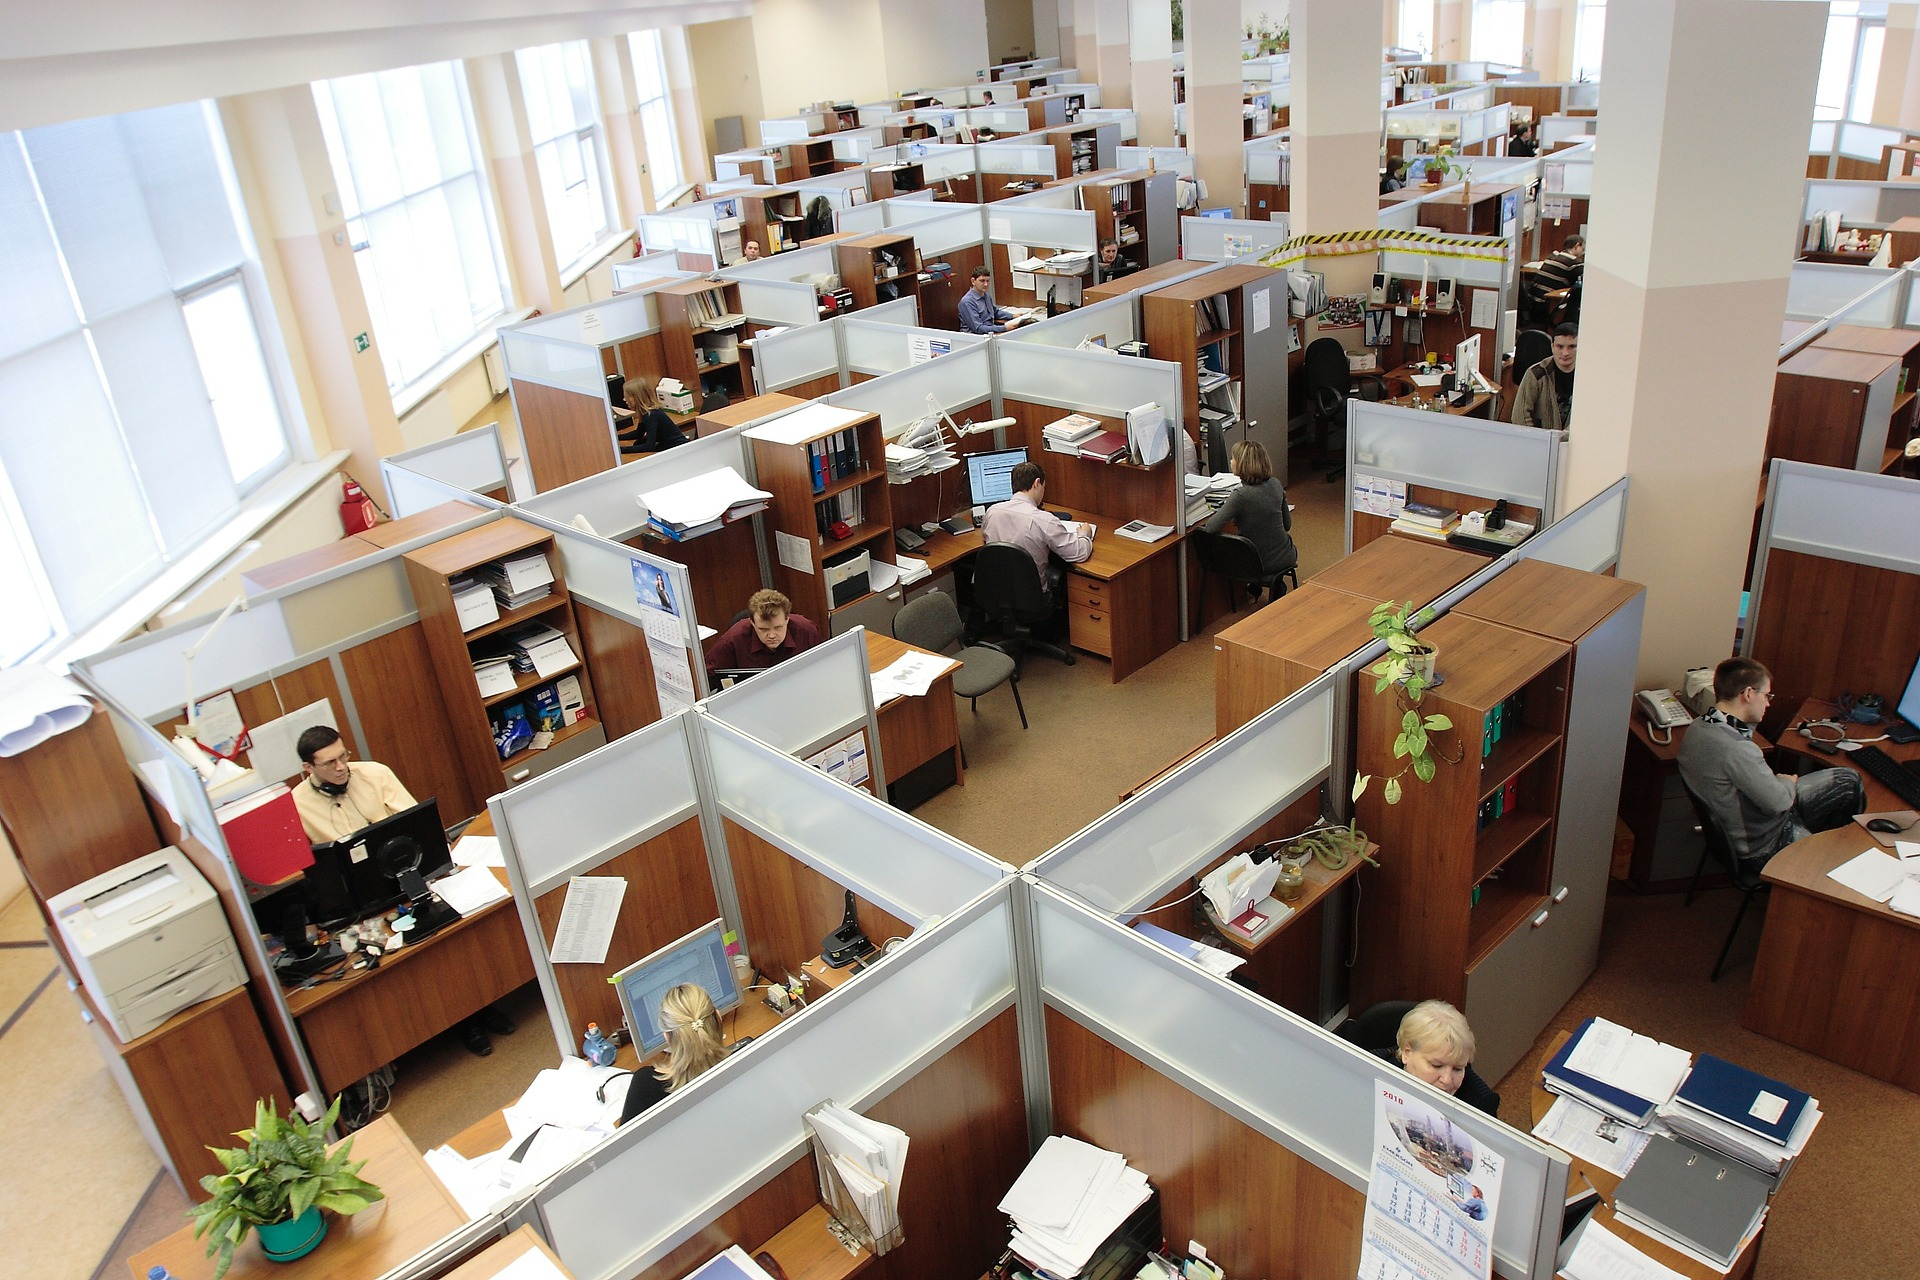 Dor blog | Herman miller cubicles